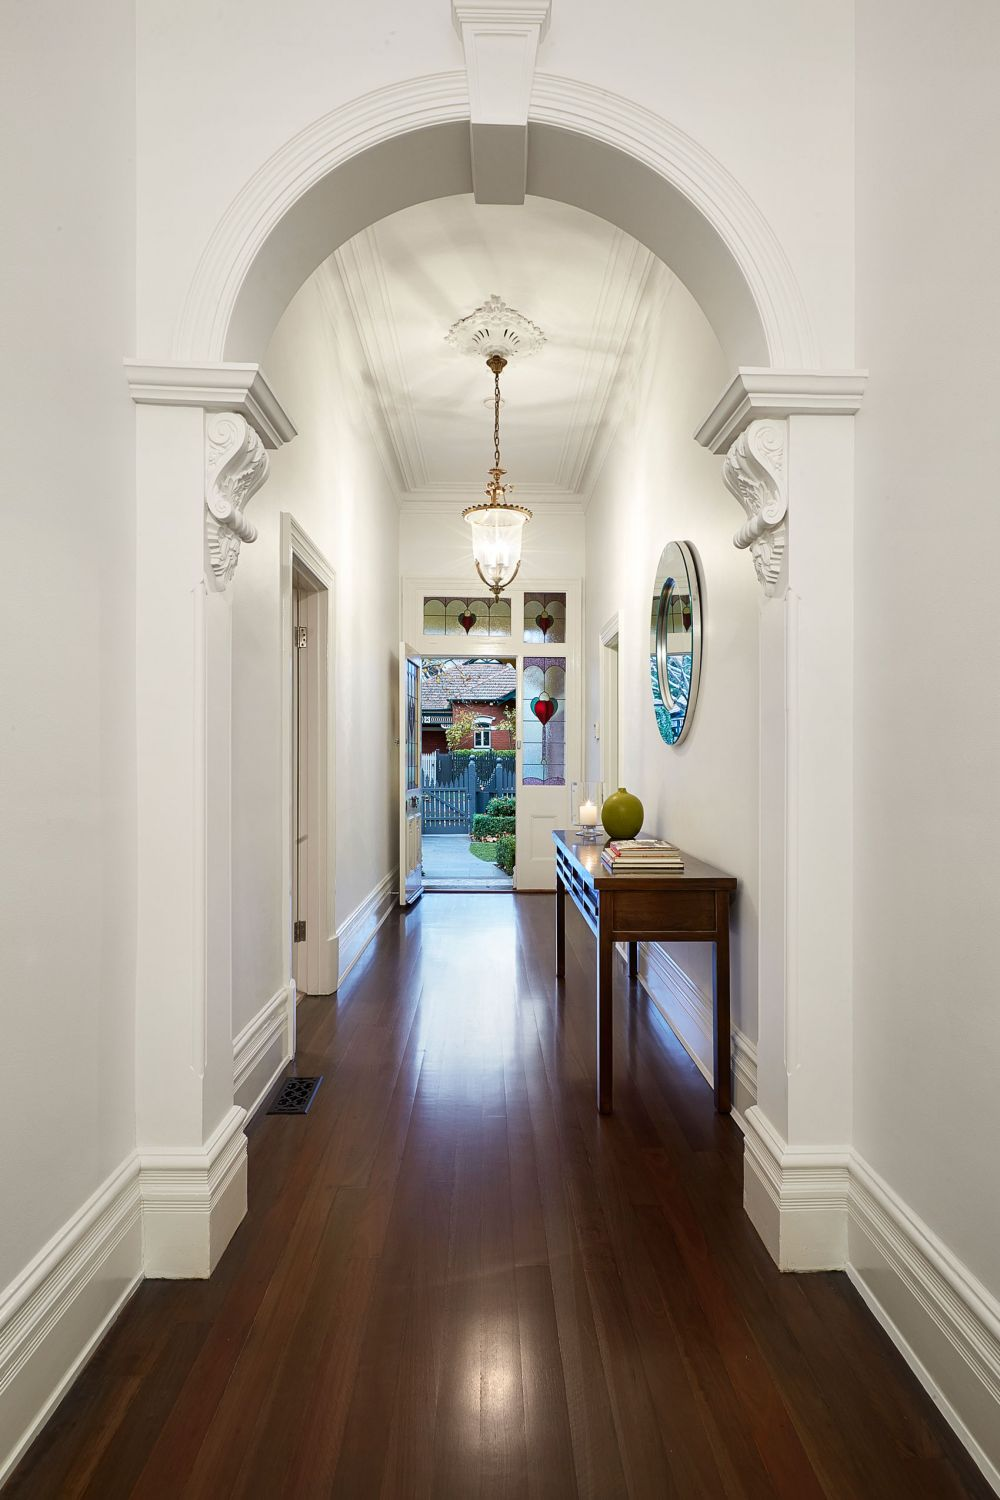 Interior Room Arches Decoration Ideas. White plaster structure in the hallway